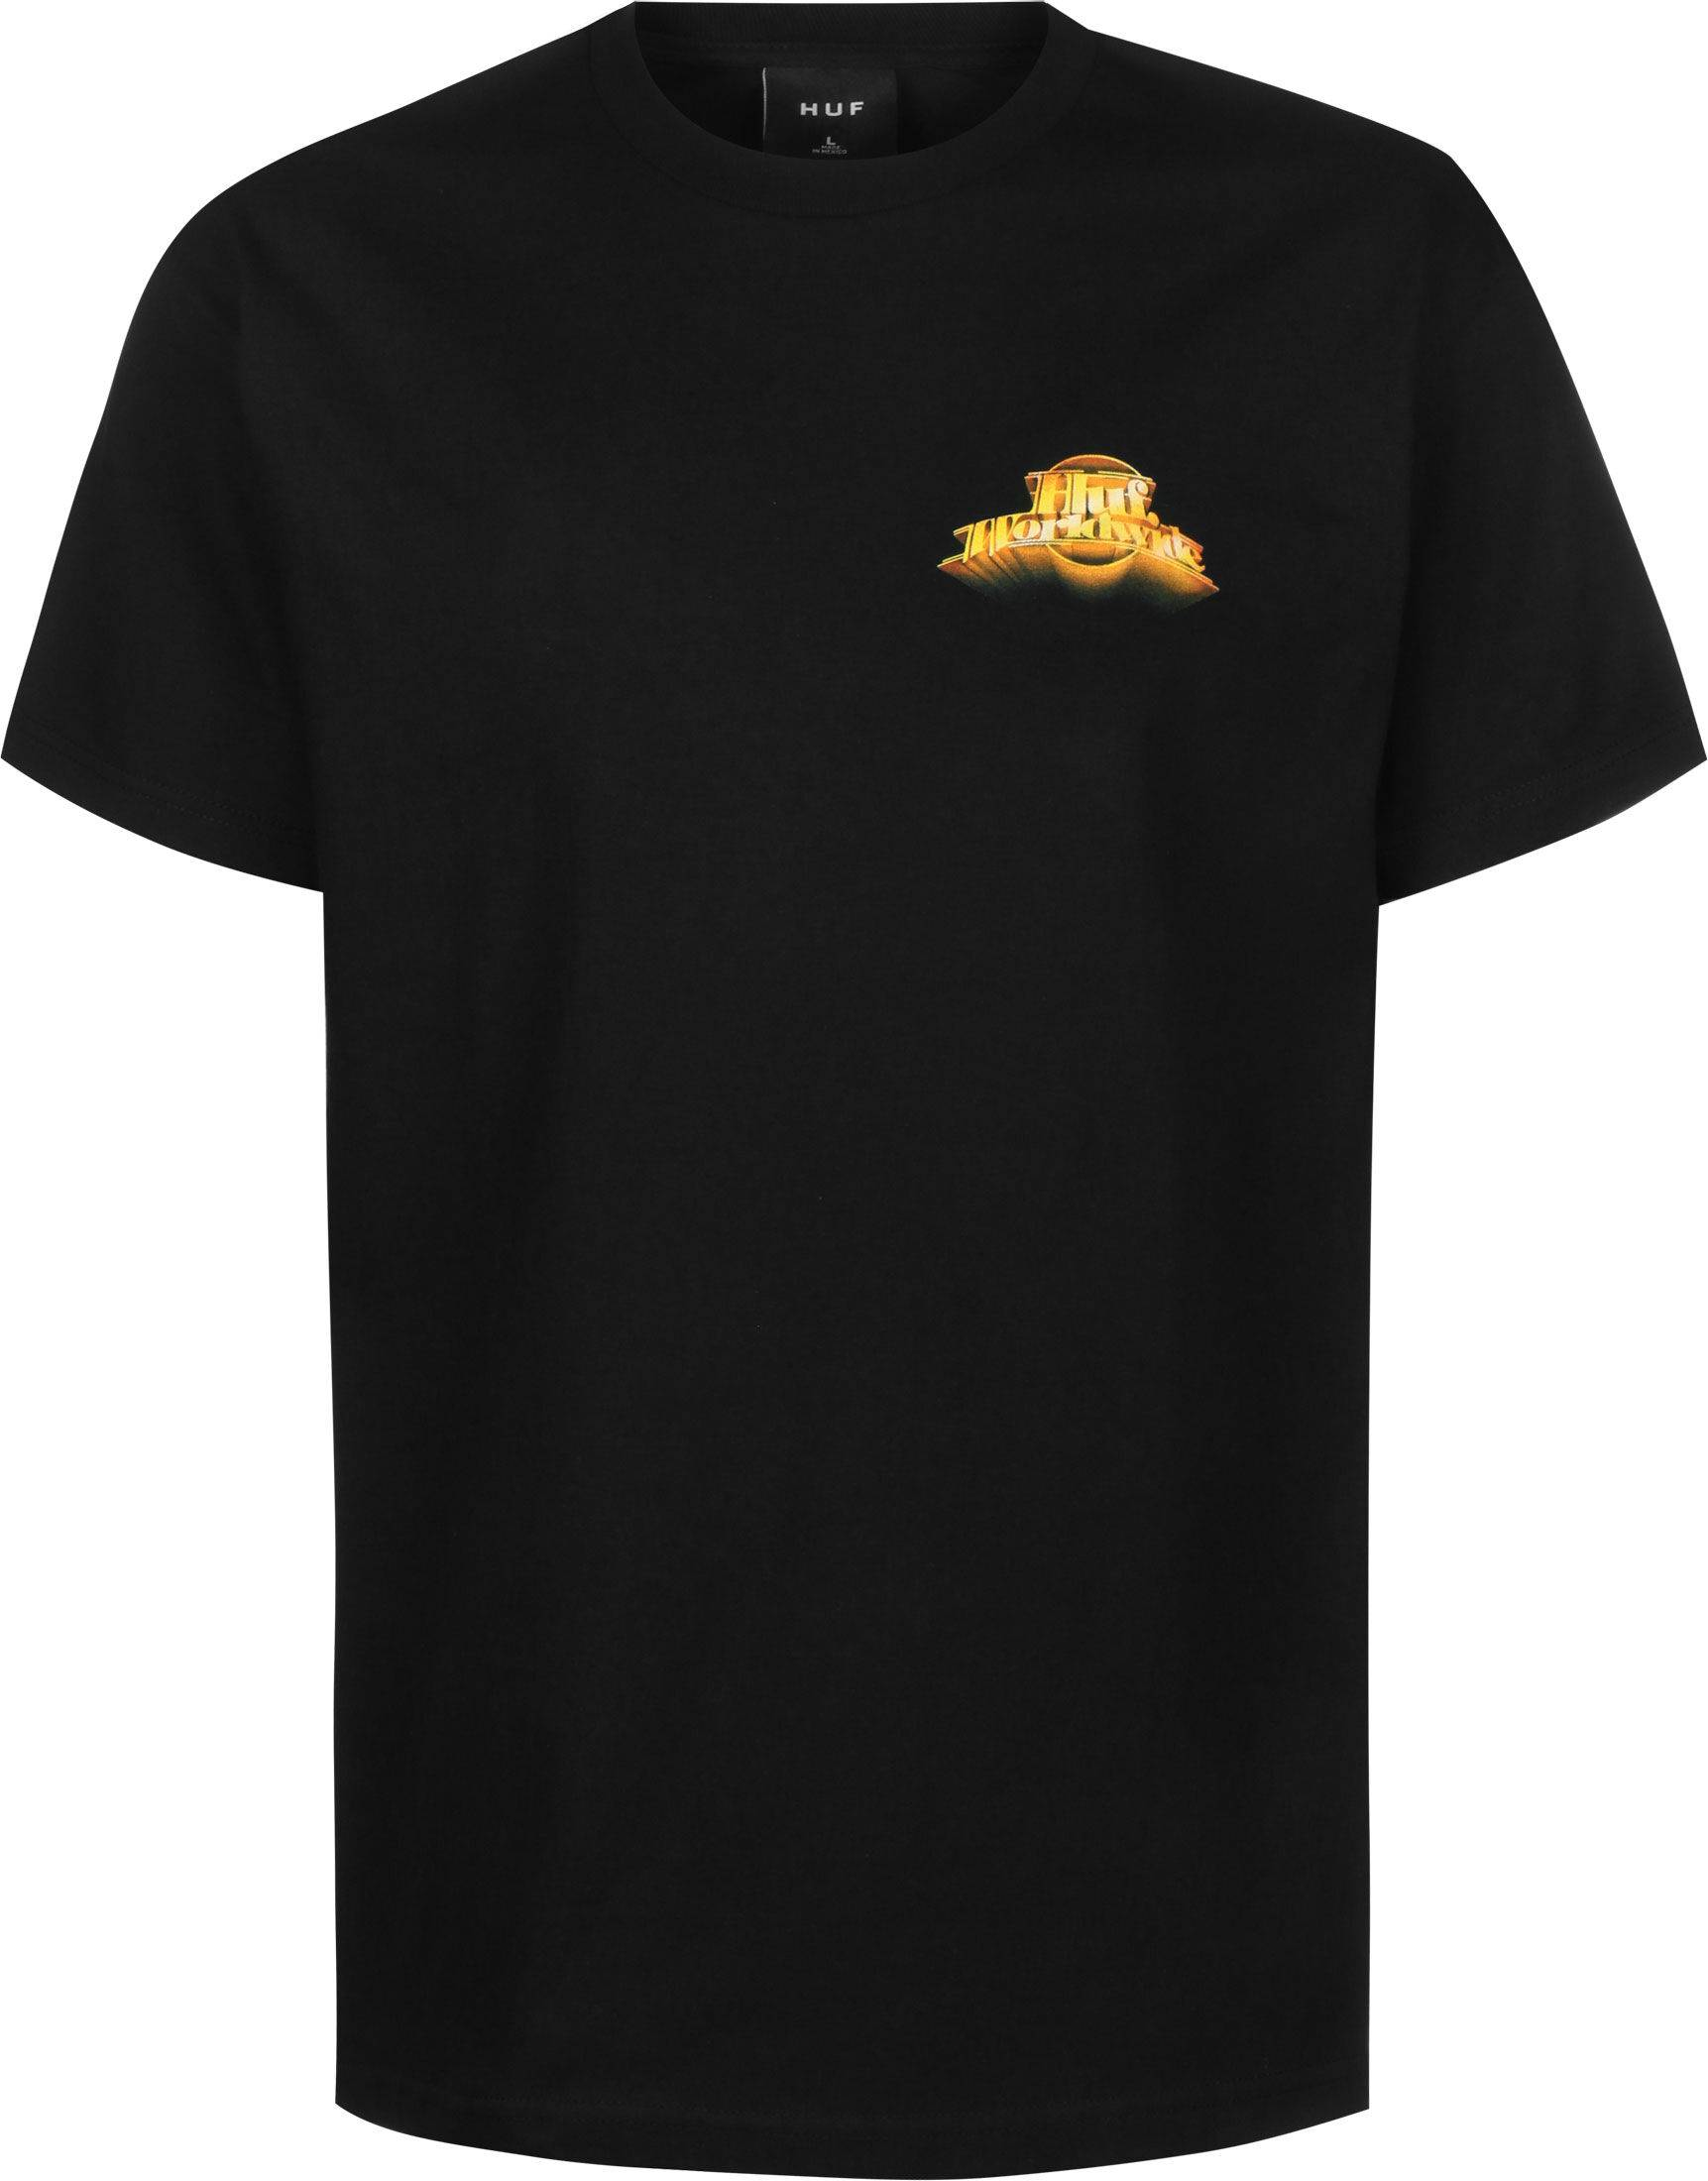 HUF Greatest Hits, taille XL, homme, noir